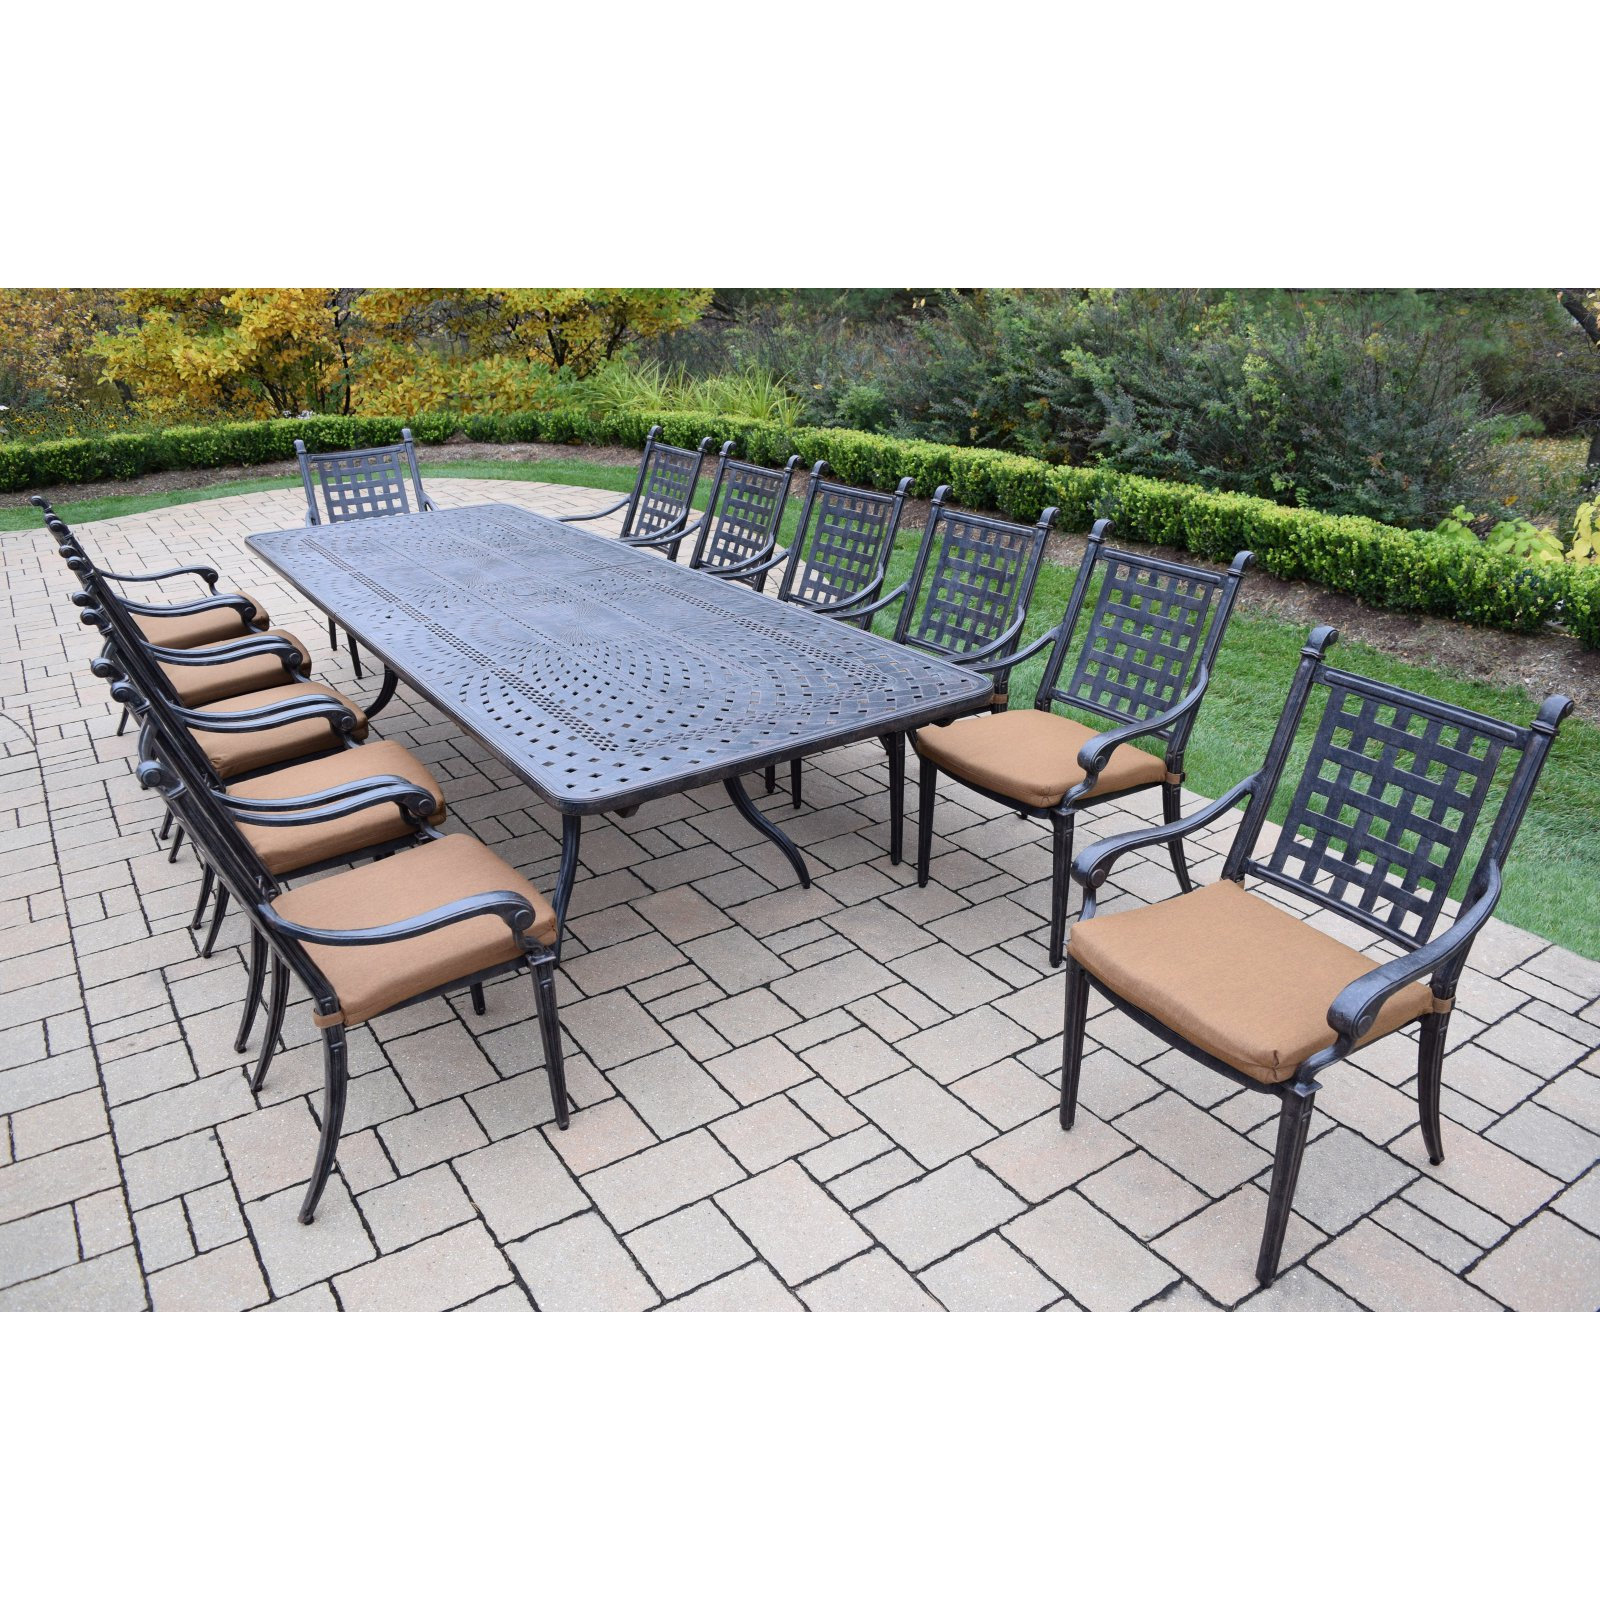 Oakland Belmont 13 Piece Extendable Patio Dining Set with...